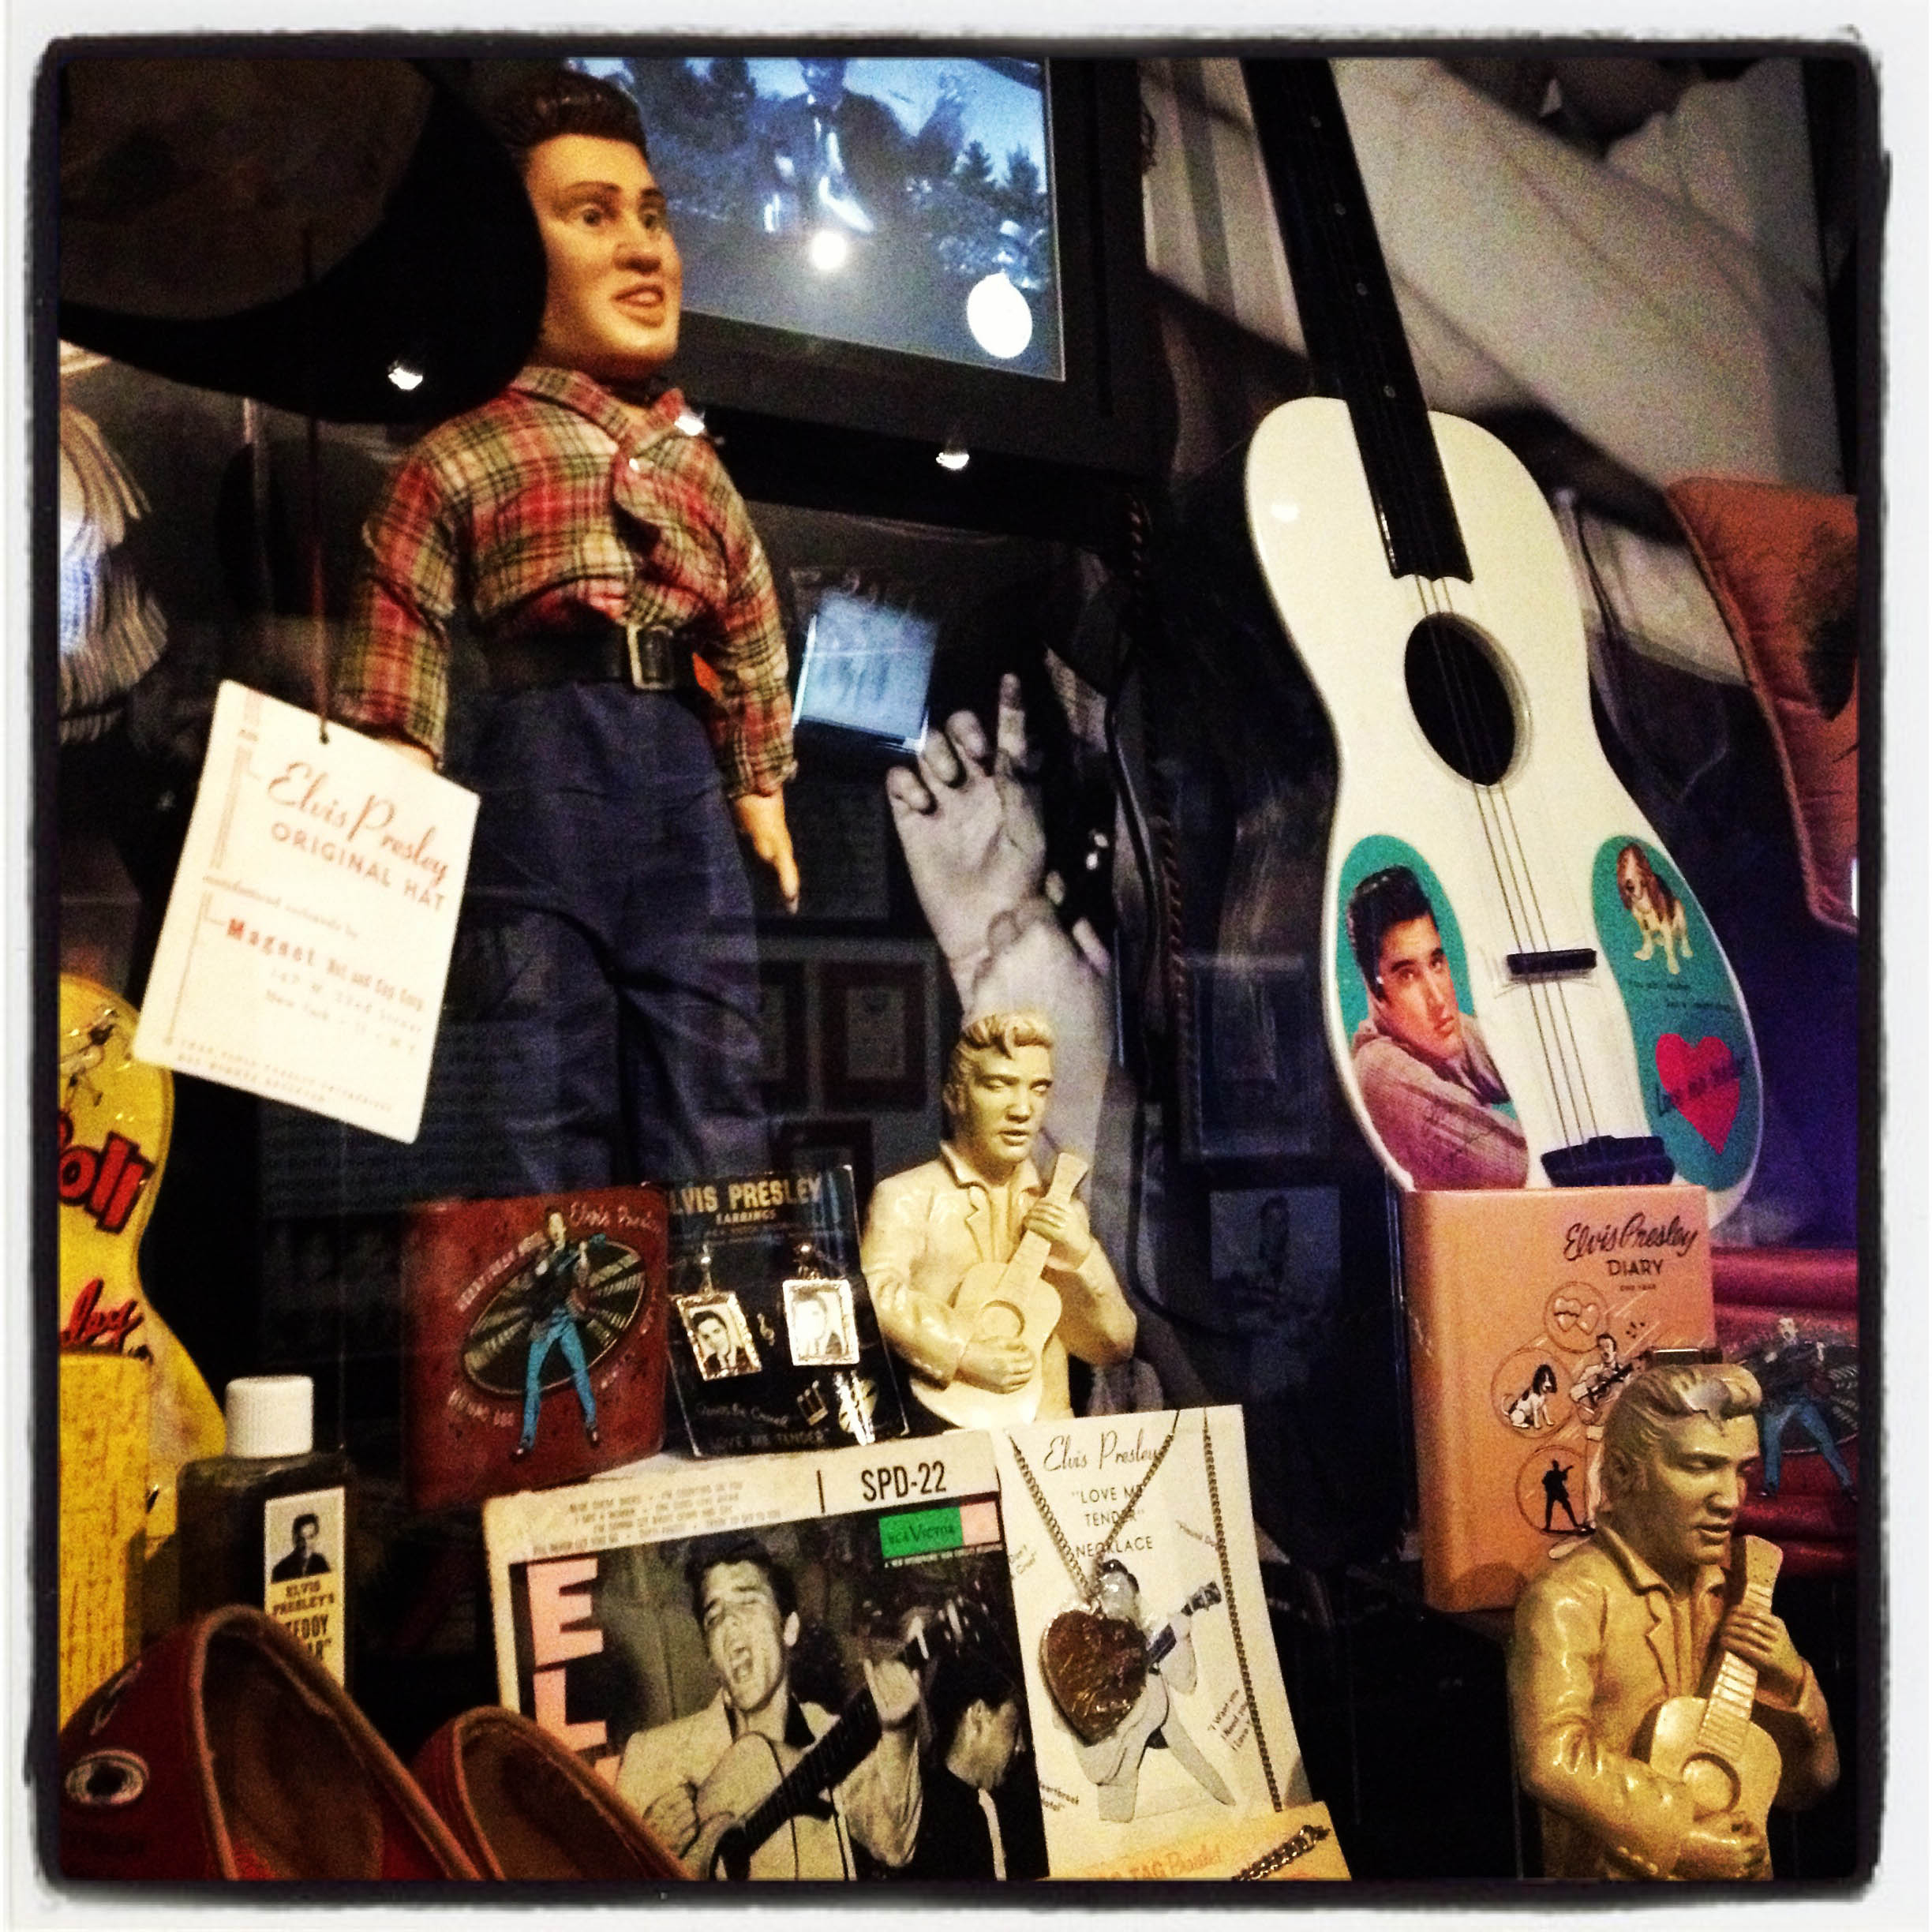 MEMPHIS, TN 01/03/14 The display cases at Graceland are full of eclectic Elvis Presley merchandise and memorabilia.  CLOE POISSON|cpoisson@courant.com